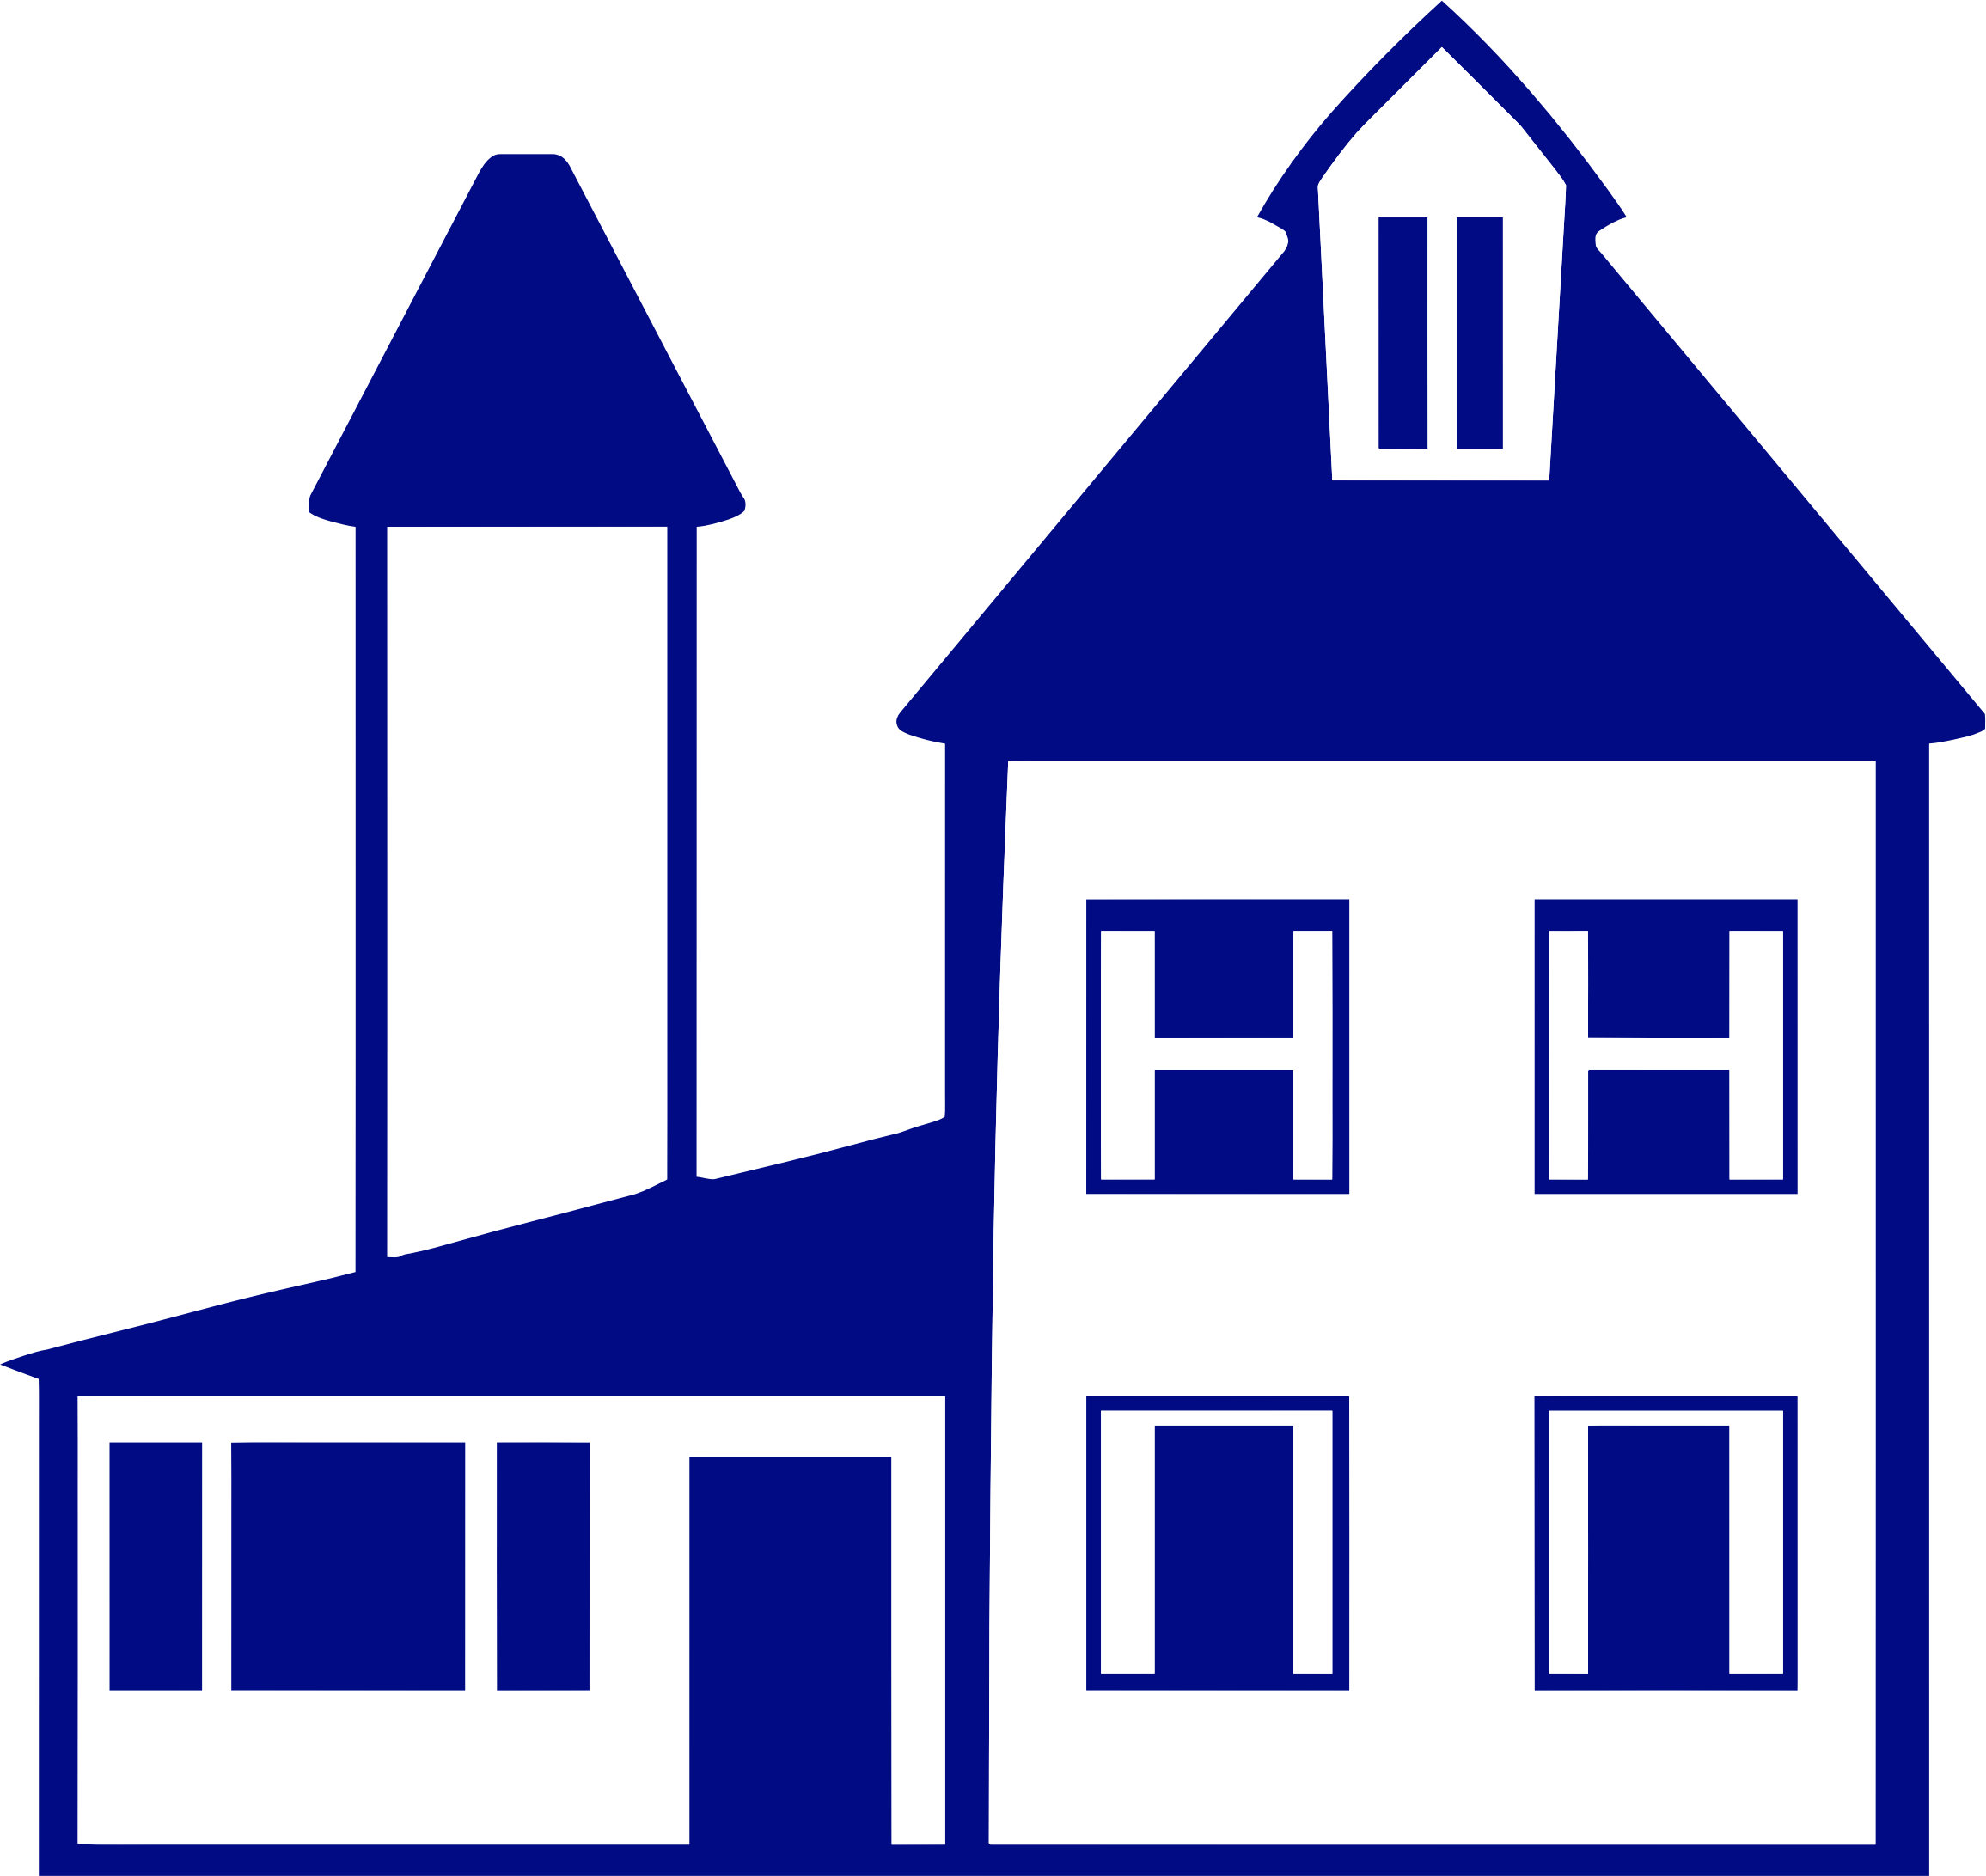 Blue house clipart clipart freeuse download Clipart - Blue House clipart freeuse download